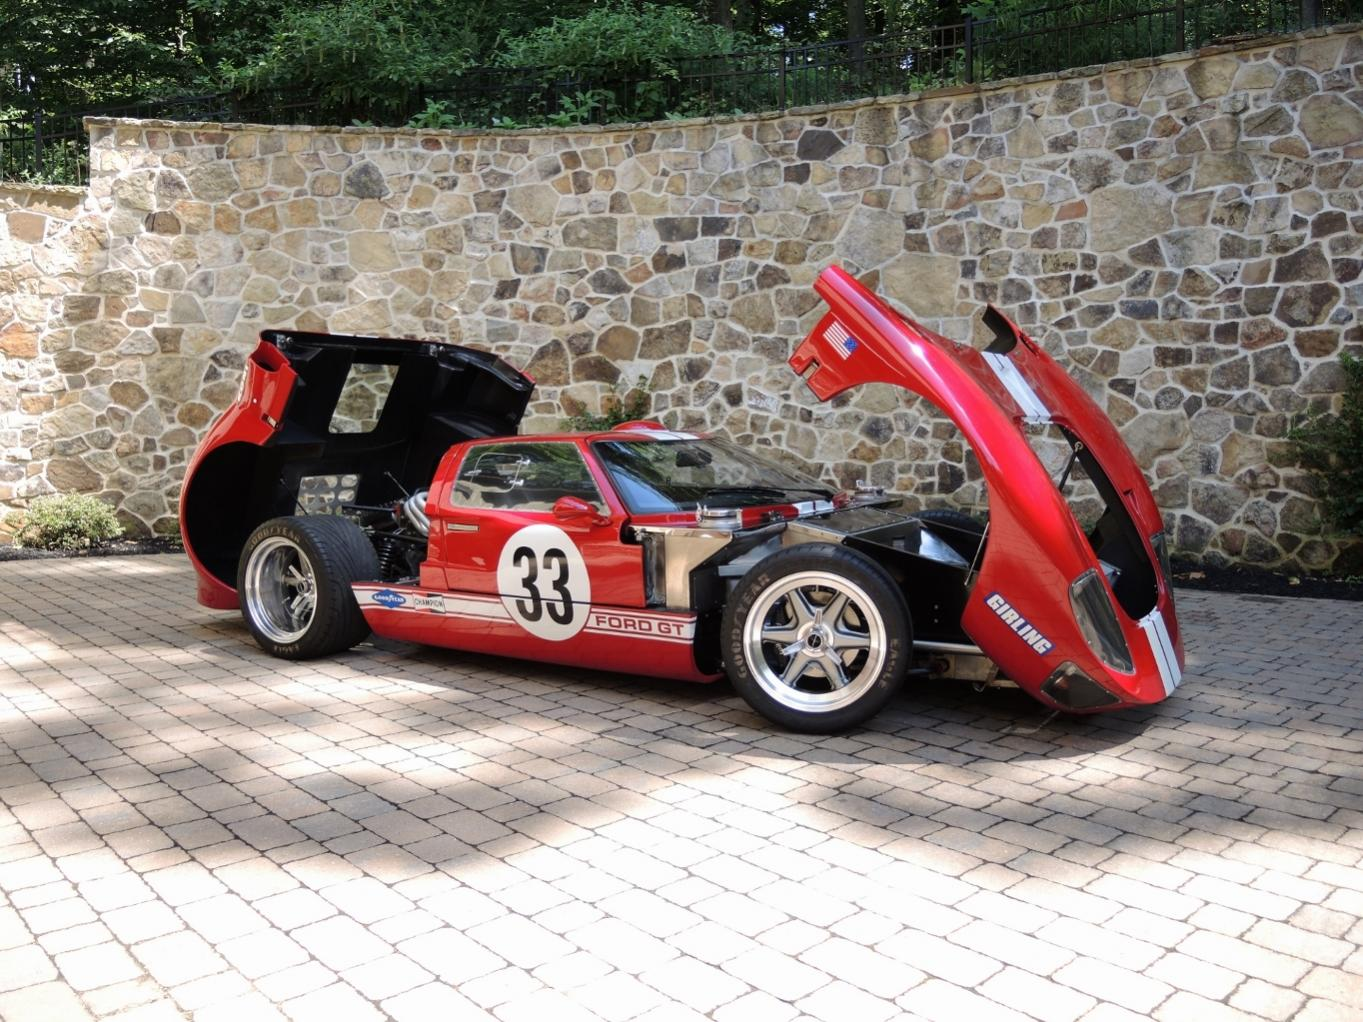 1966 CAV GT For Sale **SOLD**-front-q-o1-1920x1440-1364x1023-jpg